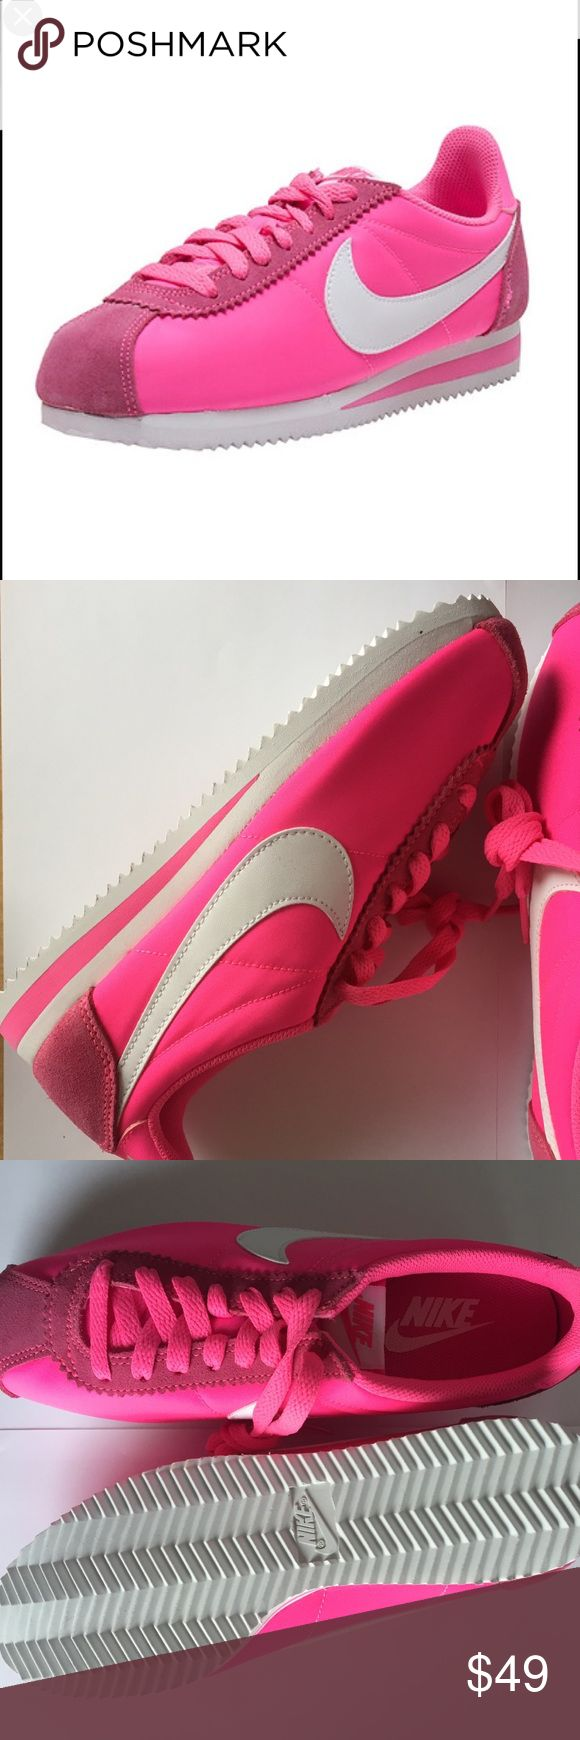 BRAND NEW Women's NIKE CLASSIC CORTEZ NYLON SHOES BRAND NEW without box!  Nike women's Cortez classic nylon tennis shoes!  Color: pink blast / white.  Nike 749864 - 610.  Super stylish and comfy! Nike Shoes Athletic Shoes